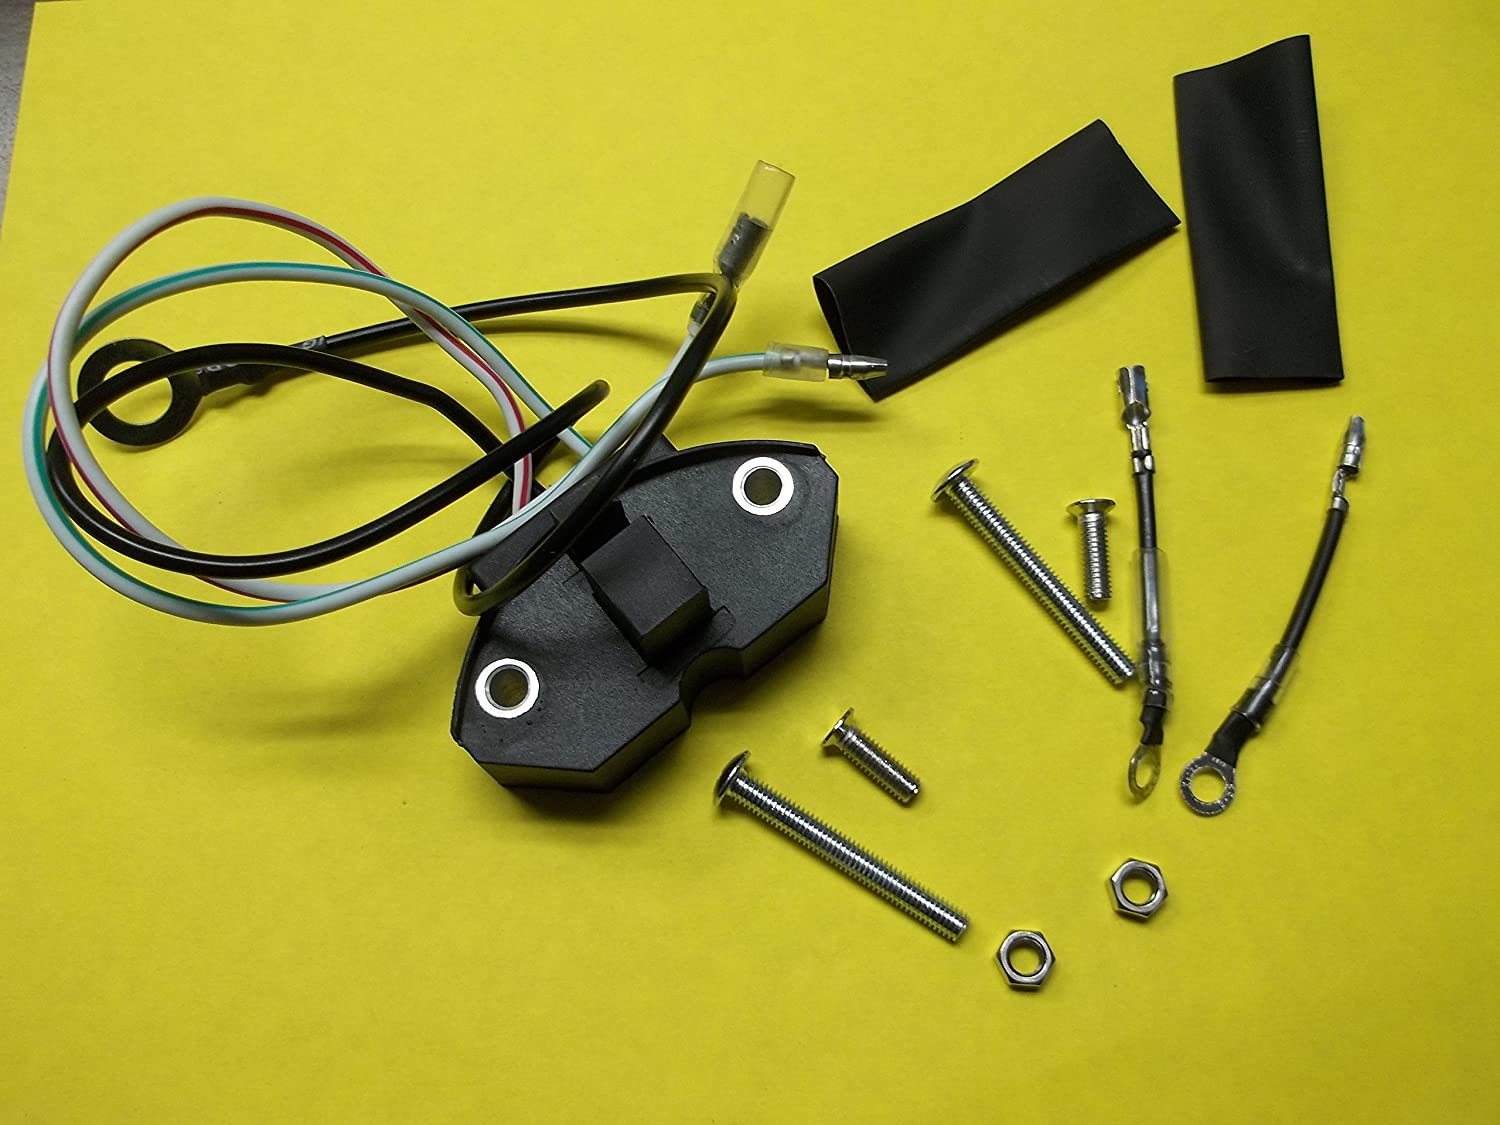 B Ignition Sensor Kit for MerCruiser Thunderbolt I IV Distributor